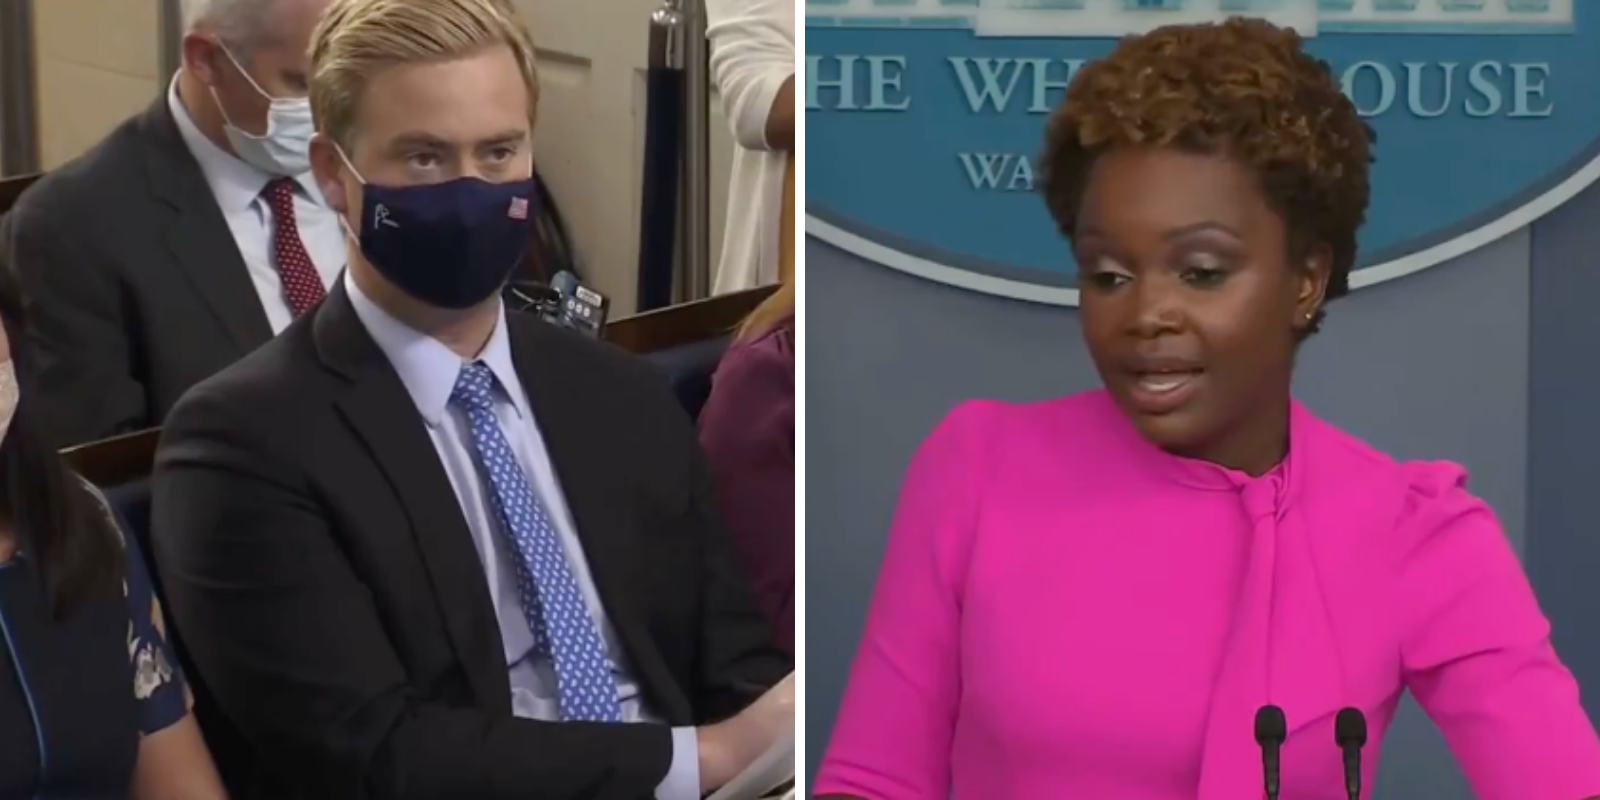 WATCH: Biden's reversal on masks has reporter asking 'why should we trust him now?'